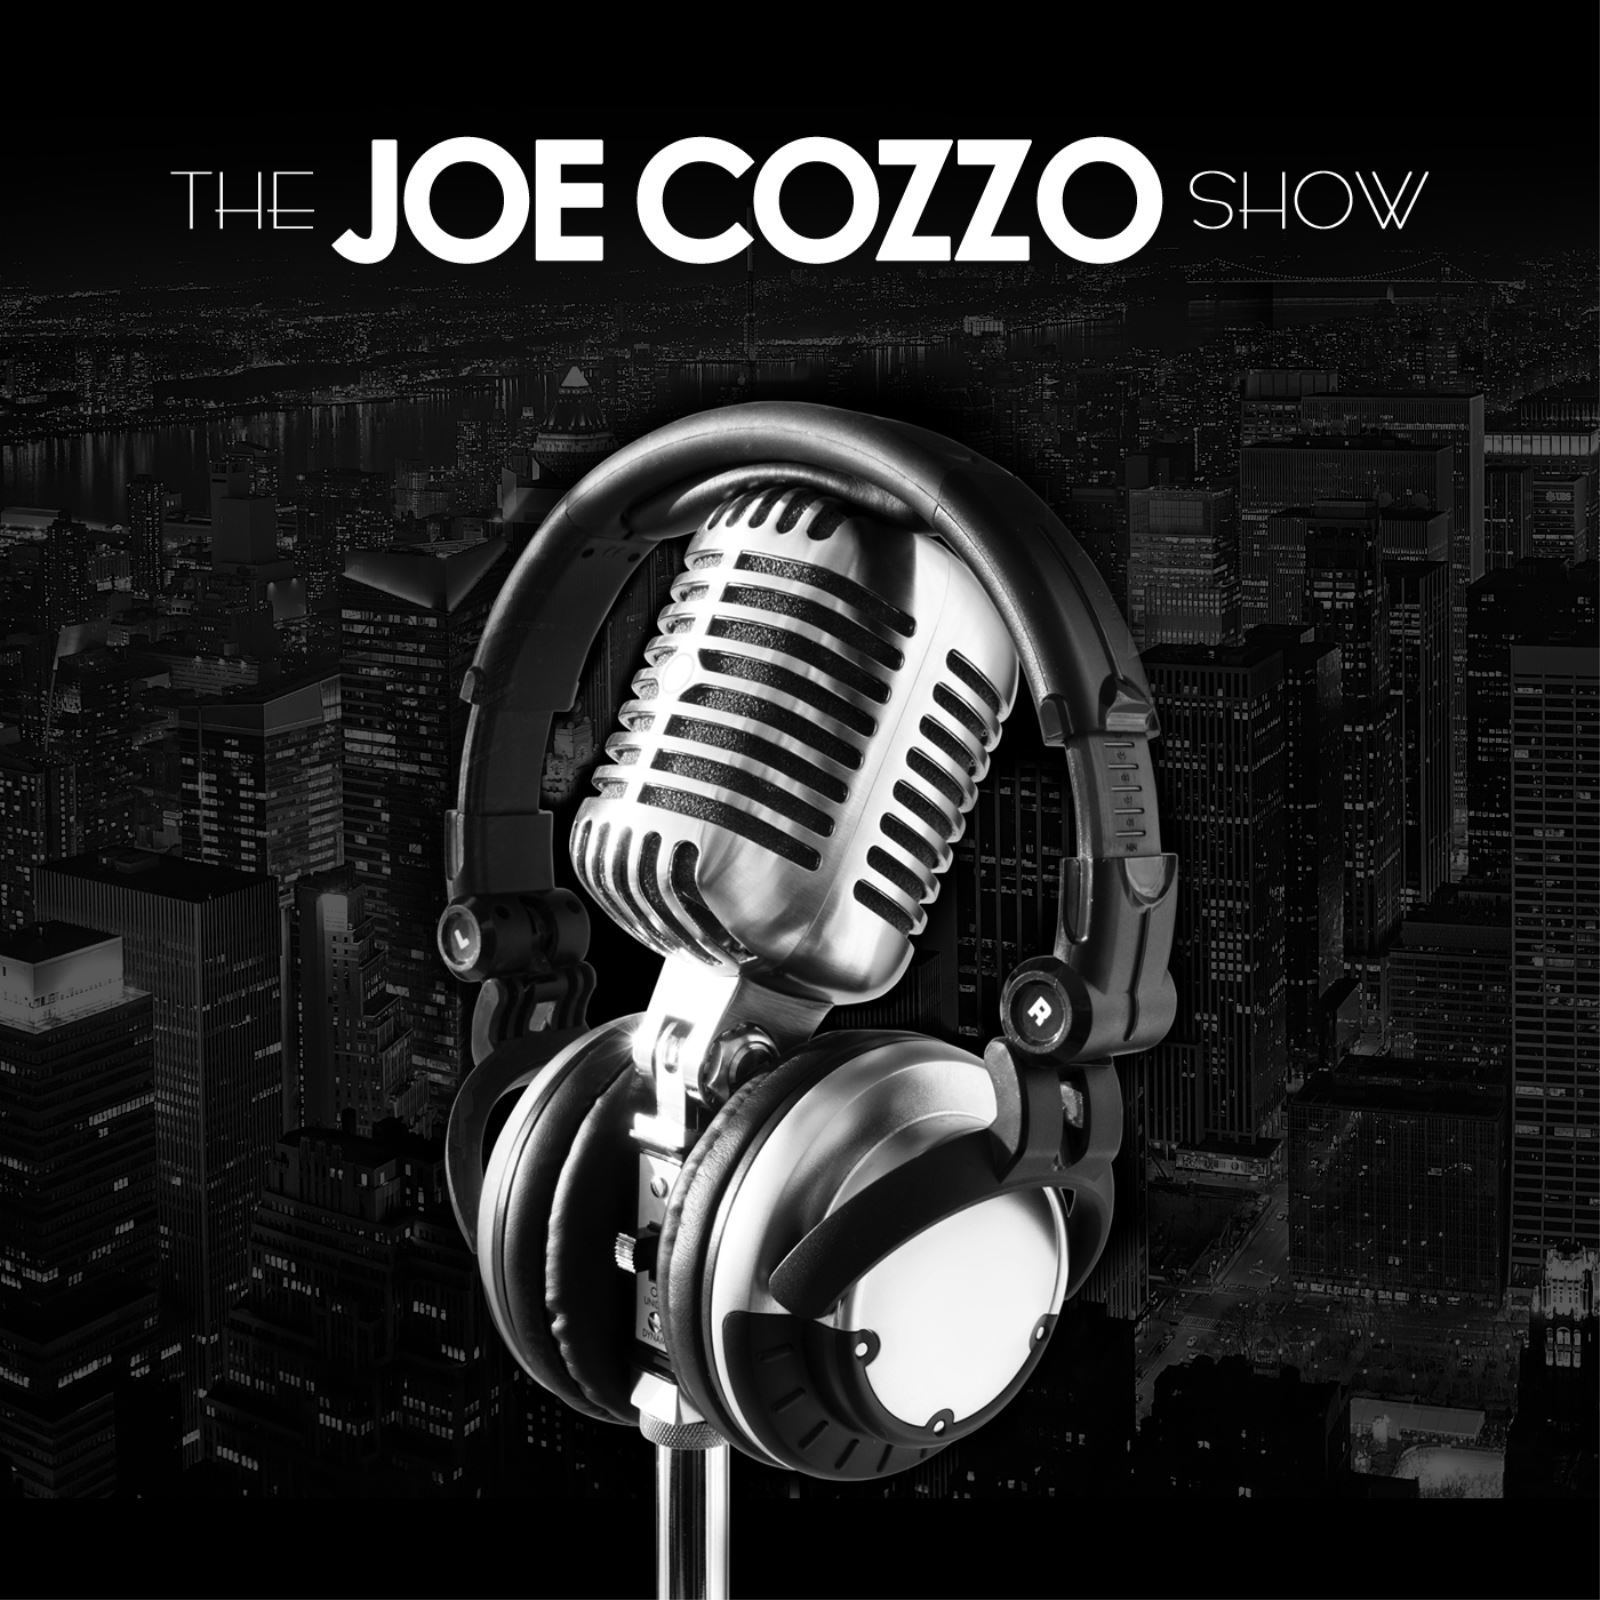 The Joe Cozzo Show